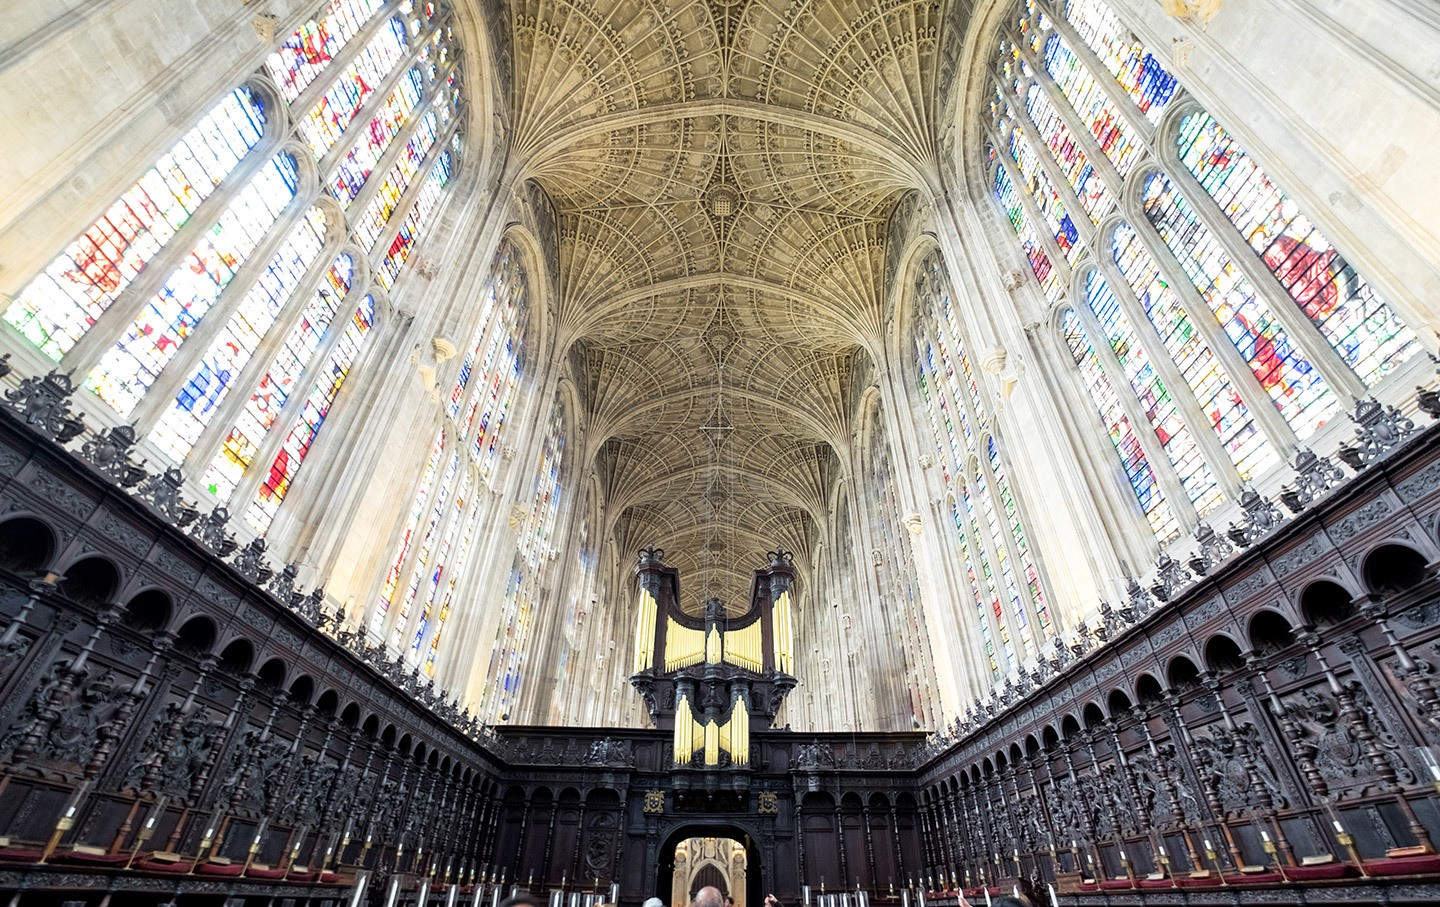 King's College Cambridge chapel